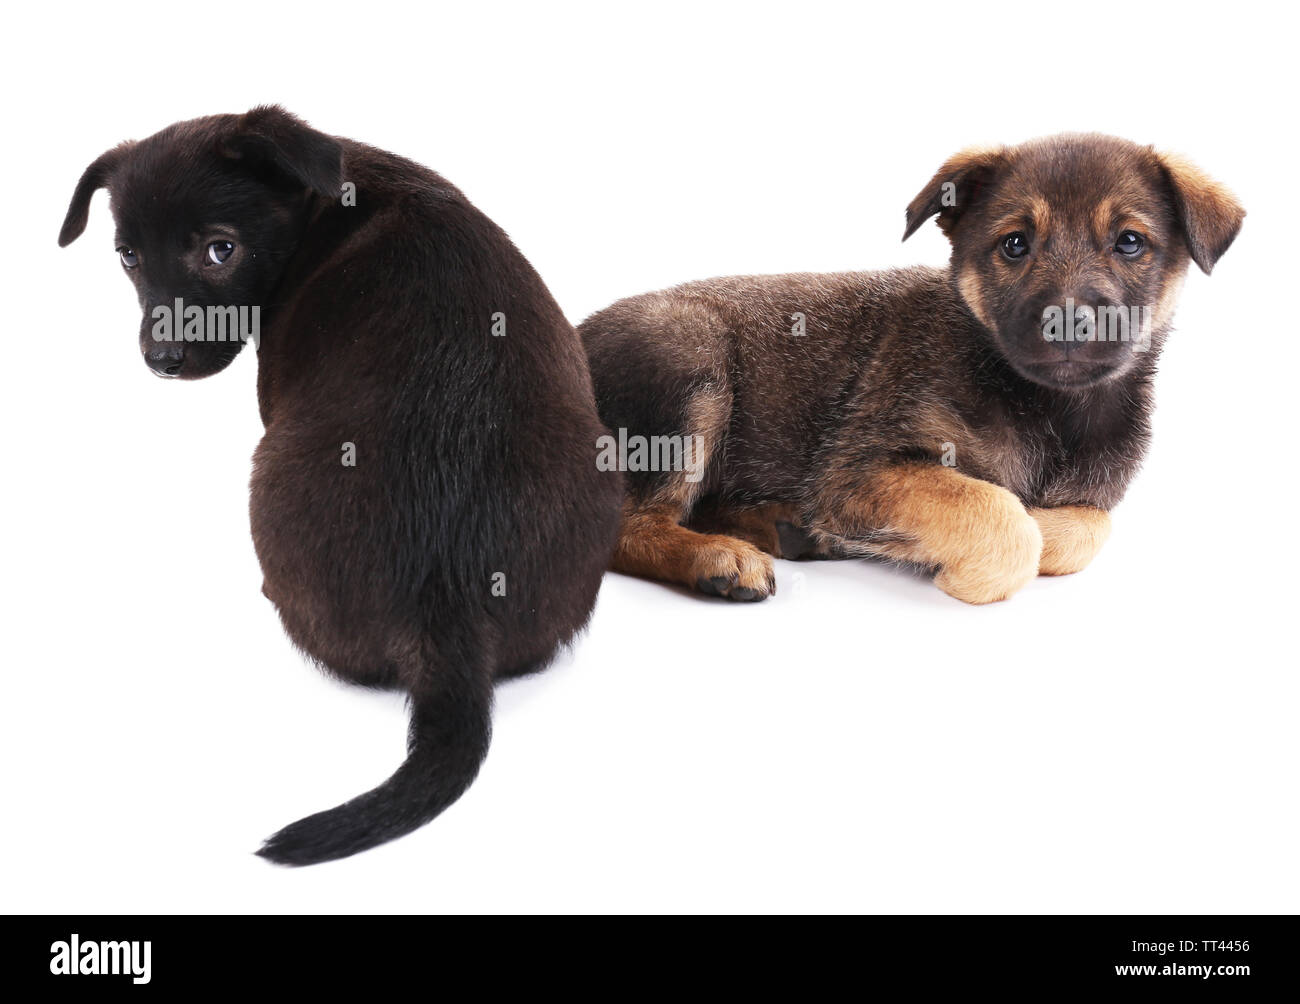 Two funny puppies isolated on white - Stock Image